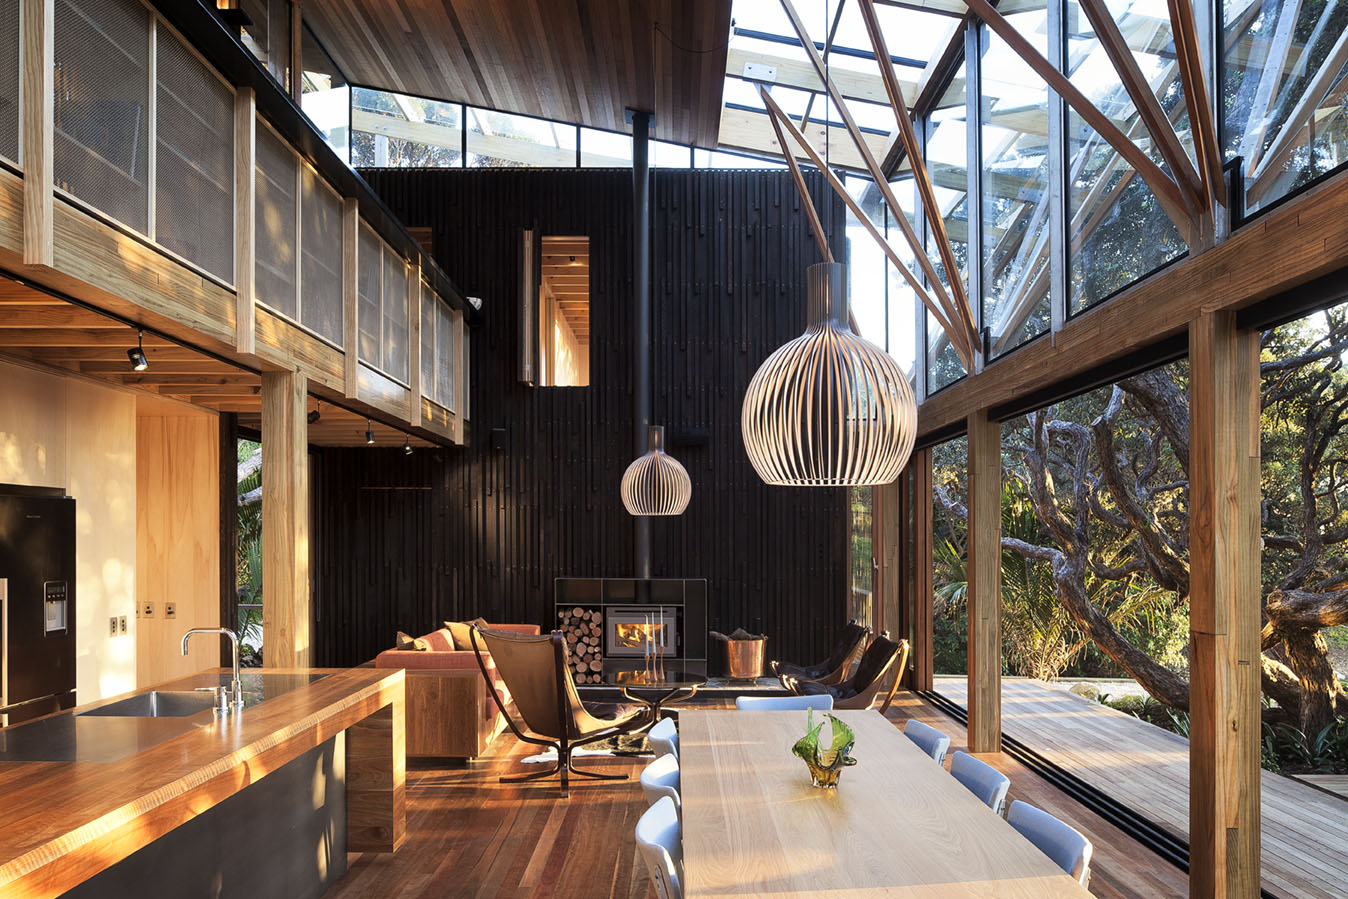 modern-house-design-transparent-interior-raw-exposed-materials4